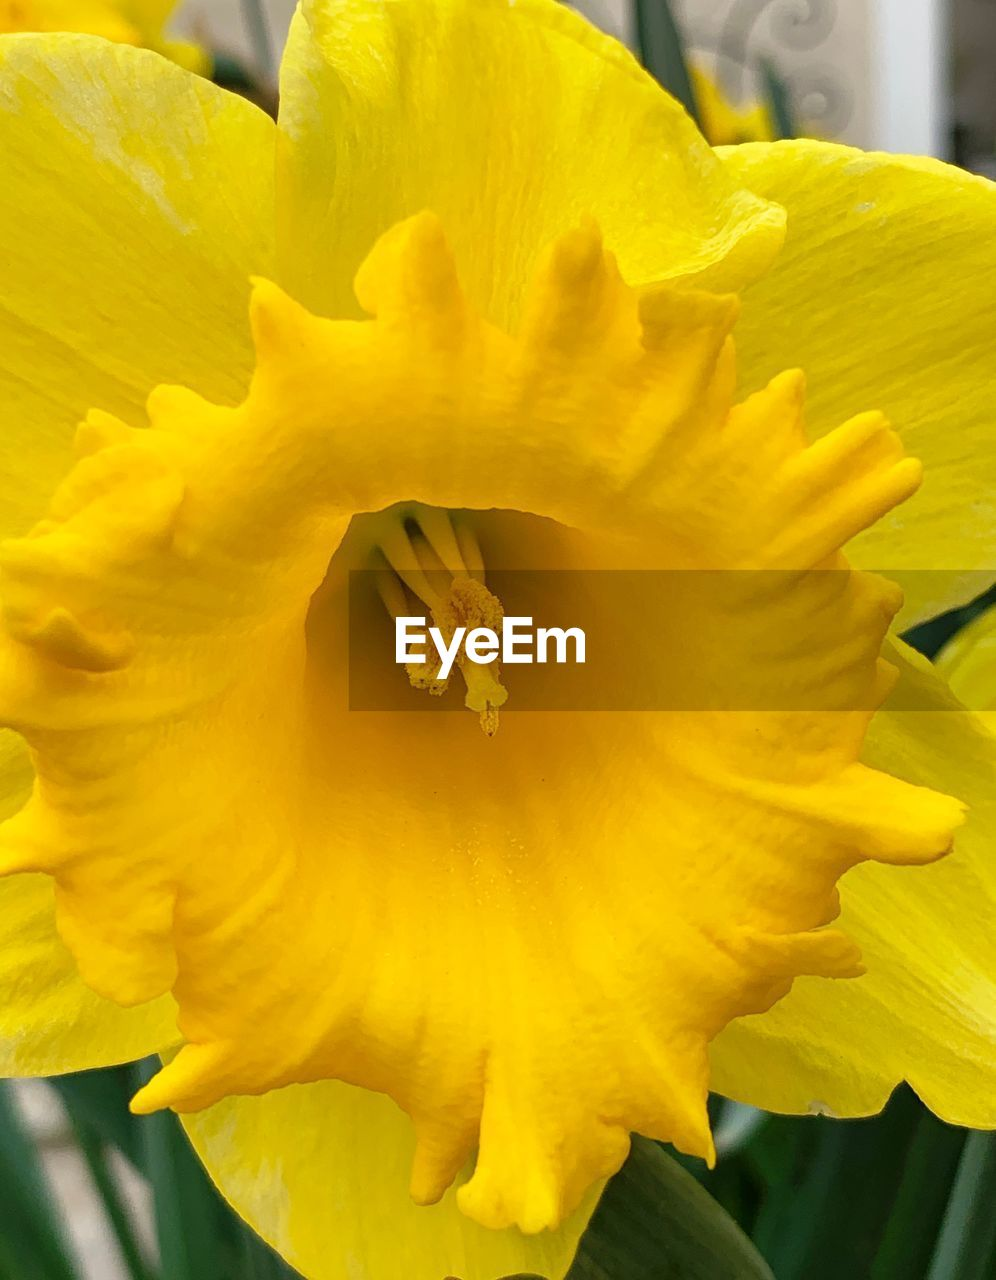 yellow, flower, flowering plant, petal, inflorescence, vulnerability, flower head, beauty in nature, plant, fragility, freshness, close-up, growth, nature, day, daffodil, no people, focus on foreground, pollen